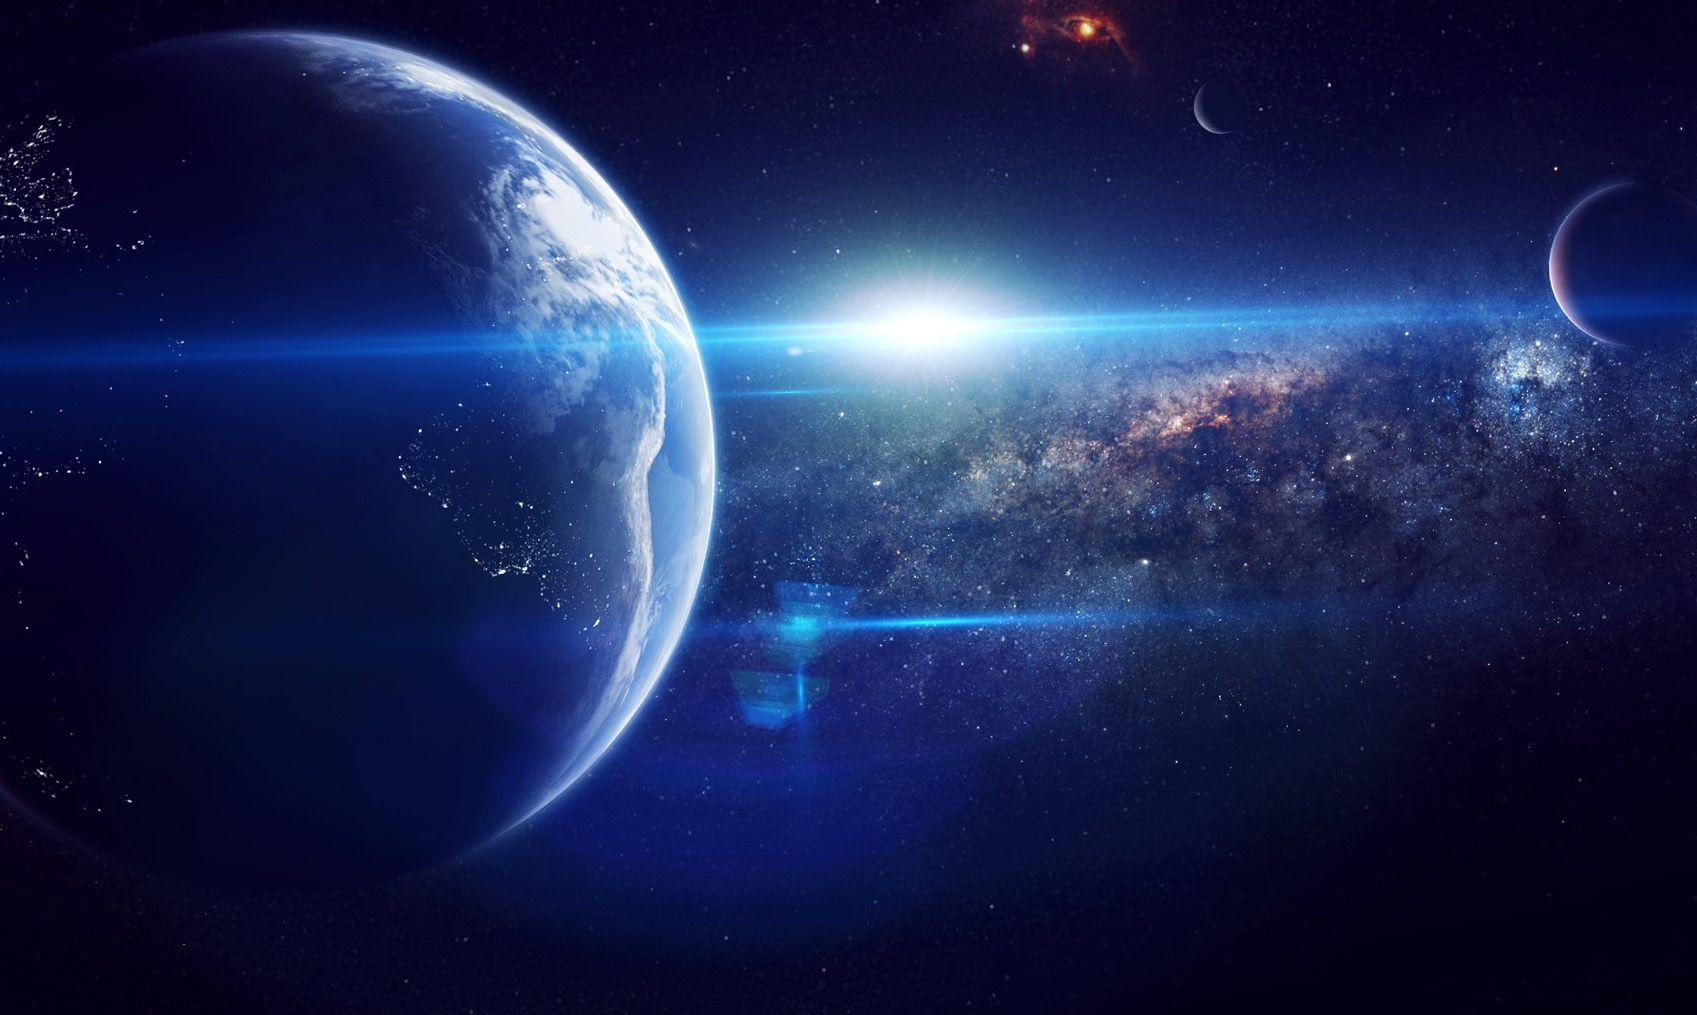 Space Wallpapers, Hd Earth Images, Aerospace, Space Images, Multi ...